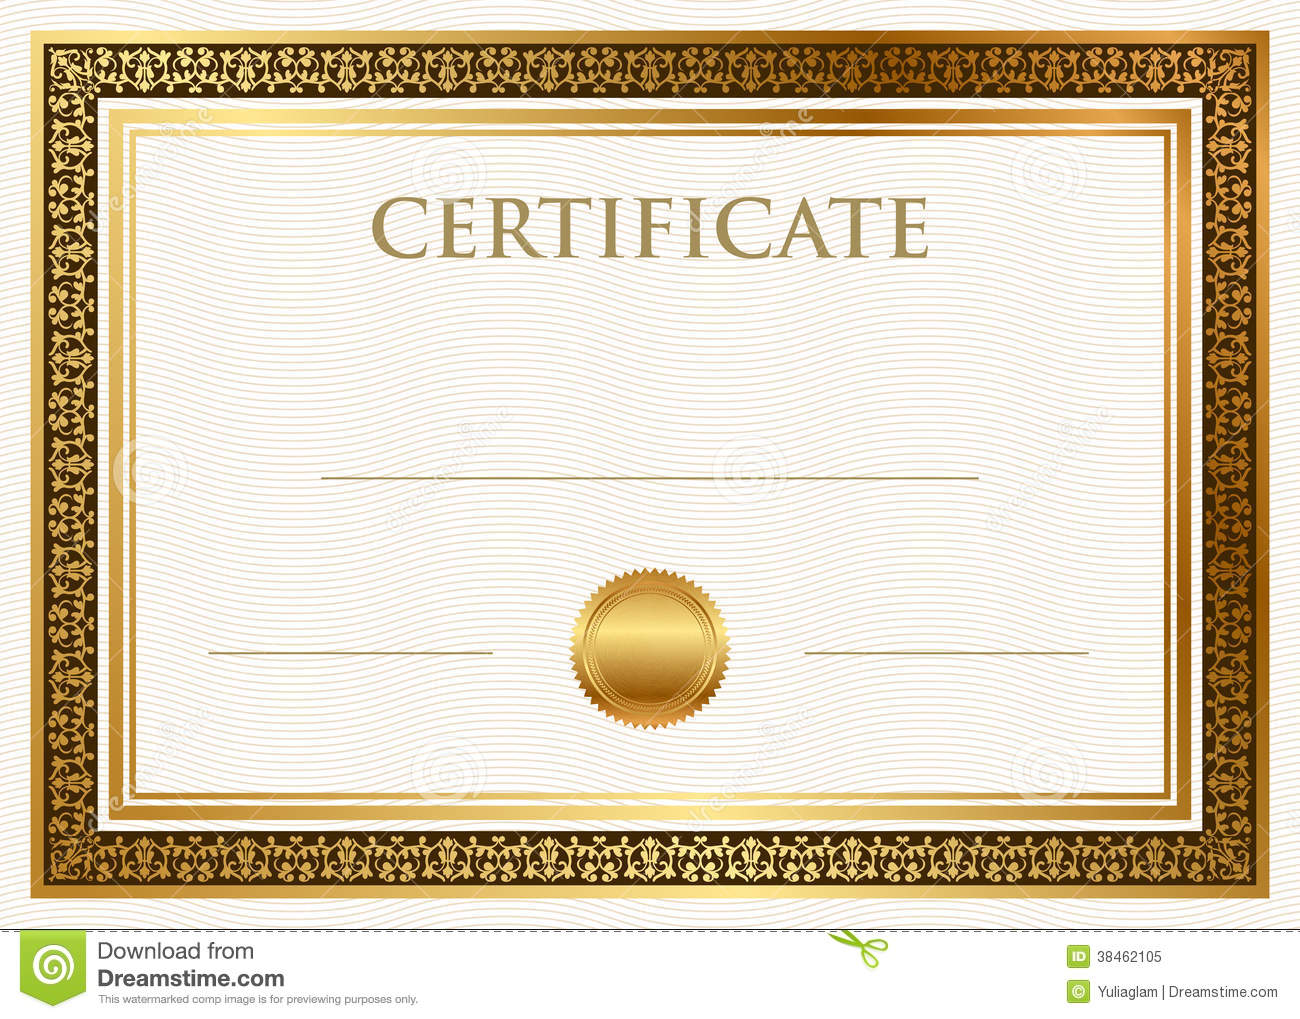 Certificate Of Achievement With Wax Seal  Free Certificate Of Achievement